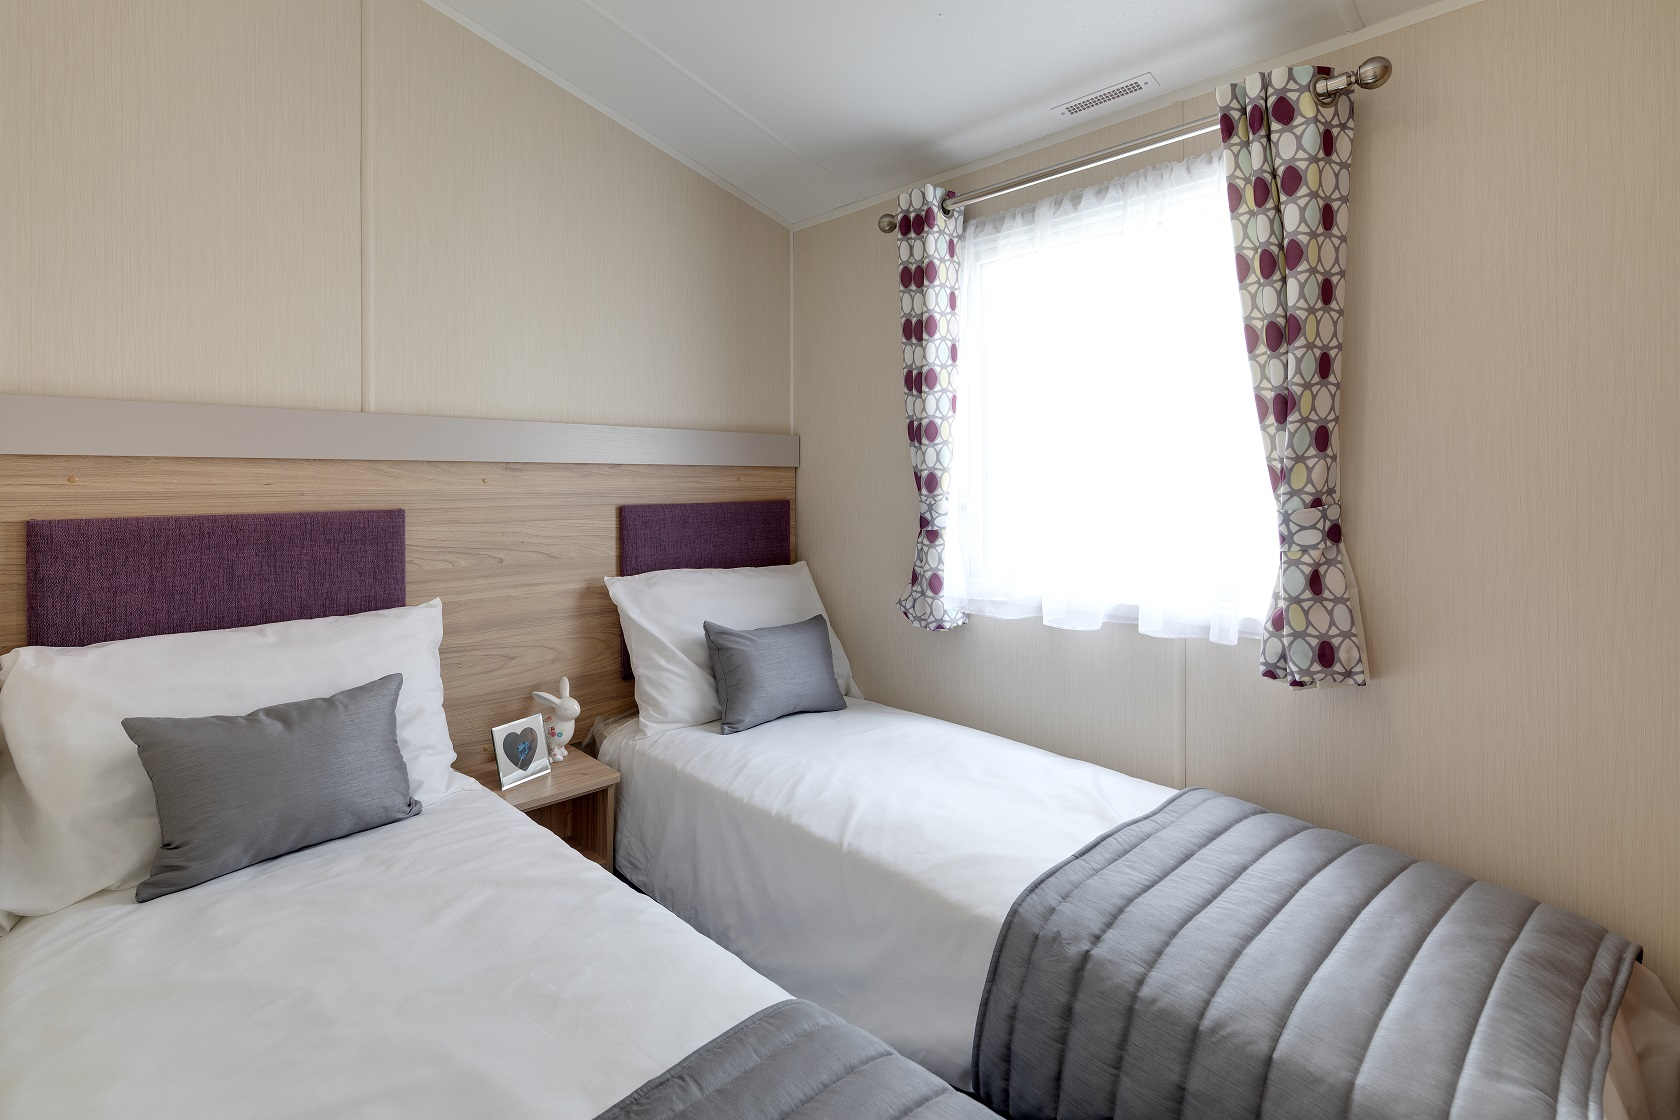 Willerby Linwood: New Static Caravans and Holiday Homes for Sale, Langley Moor, Durham Image 2